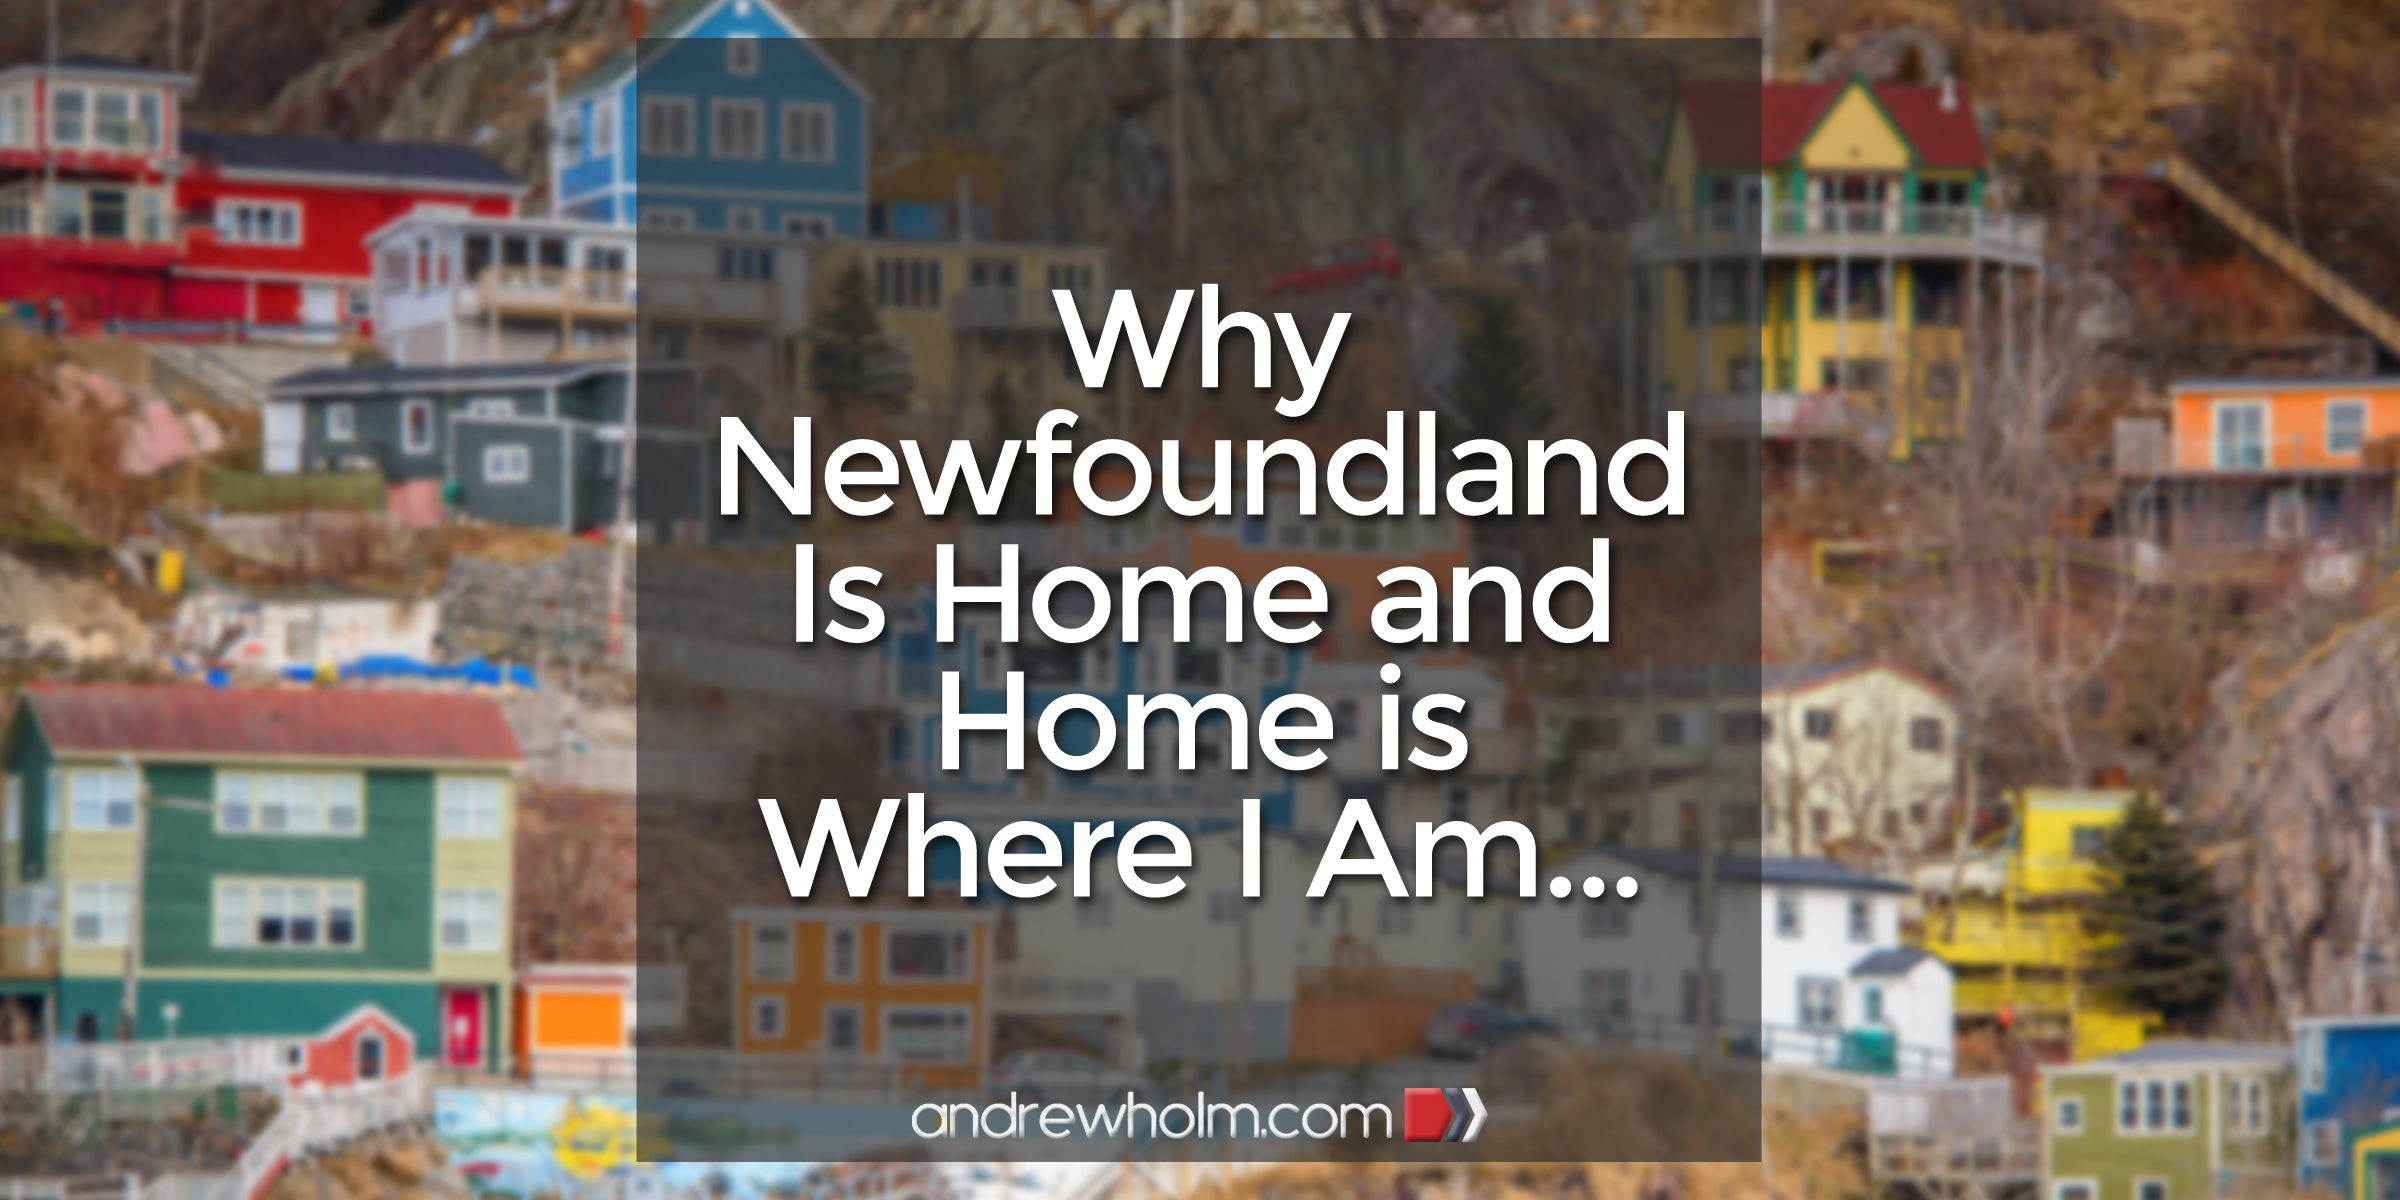 Why Newfoundland Is Home and Home is Where I Am